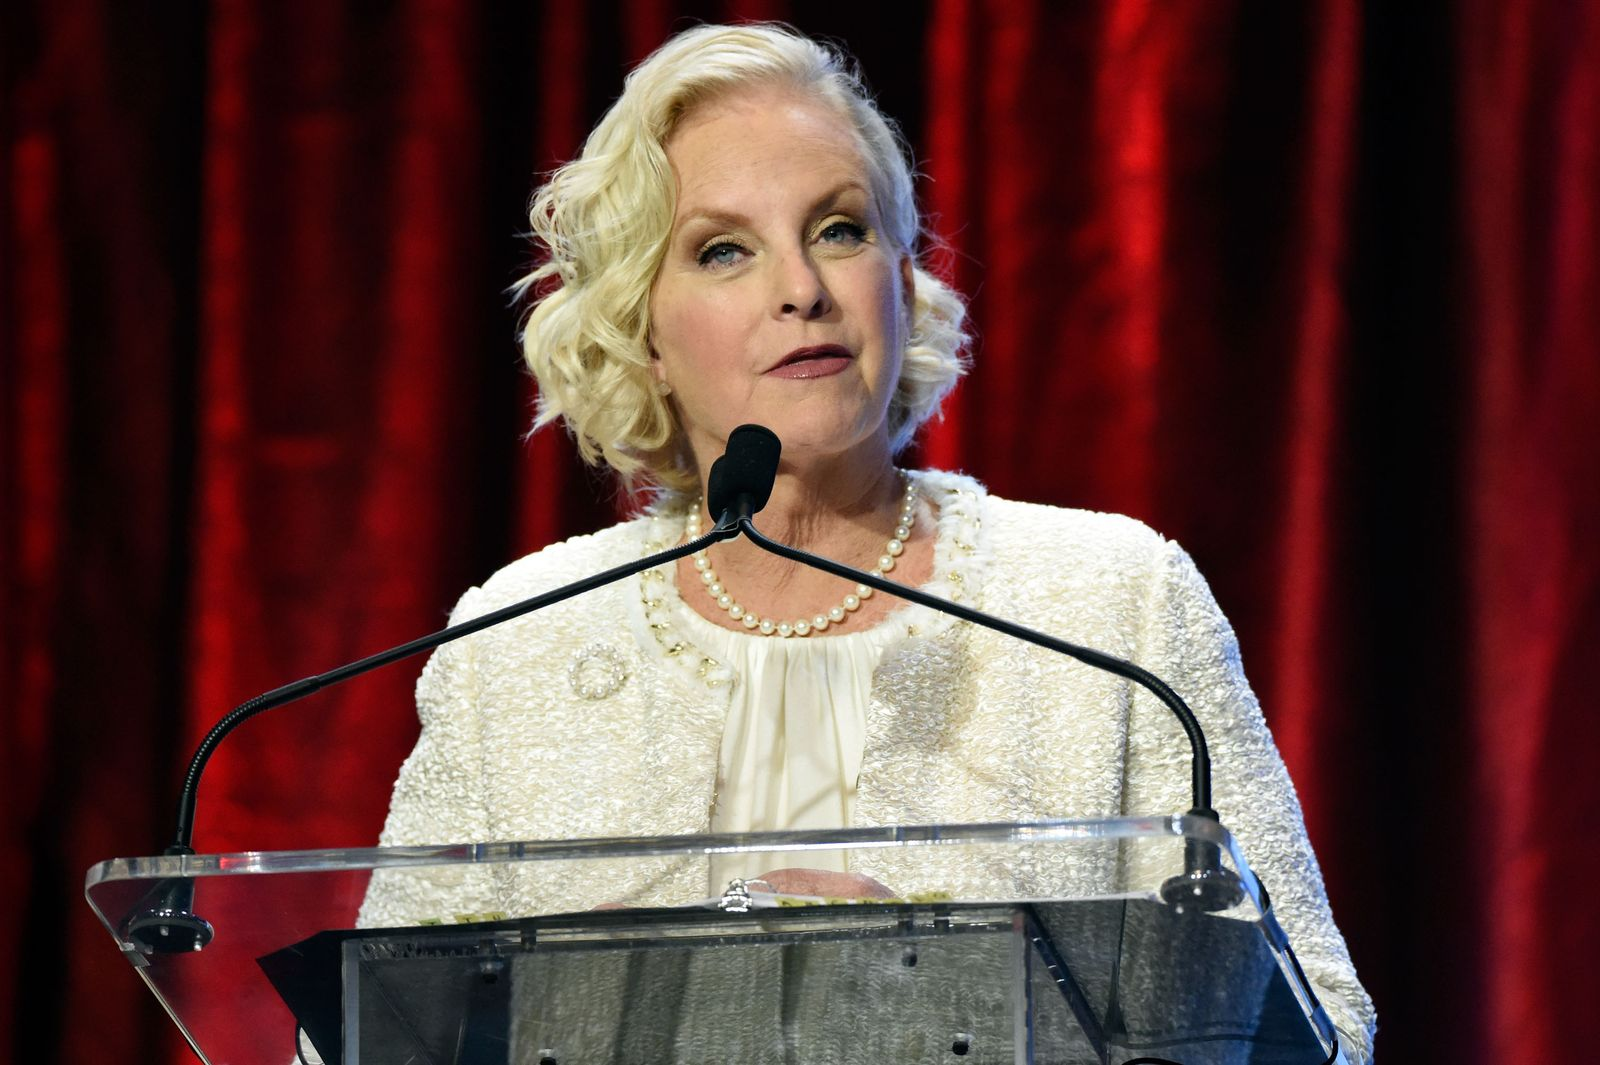 Cindy McCain at Marriott Louisville Downtown on September 17, 2016. | Photo: Getty Images